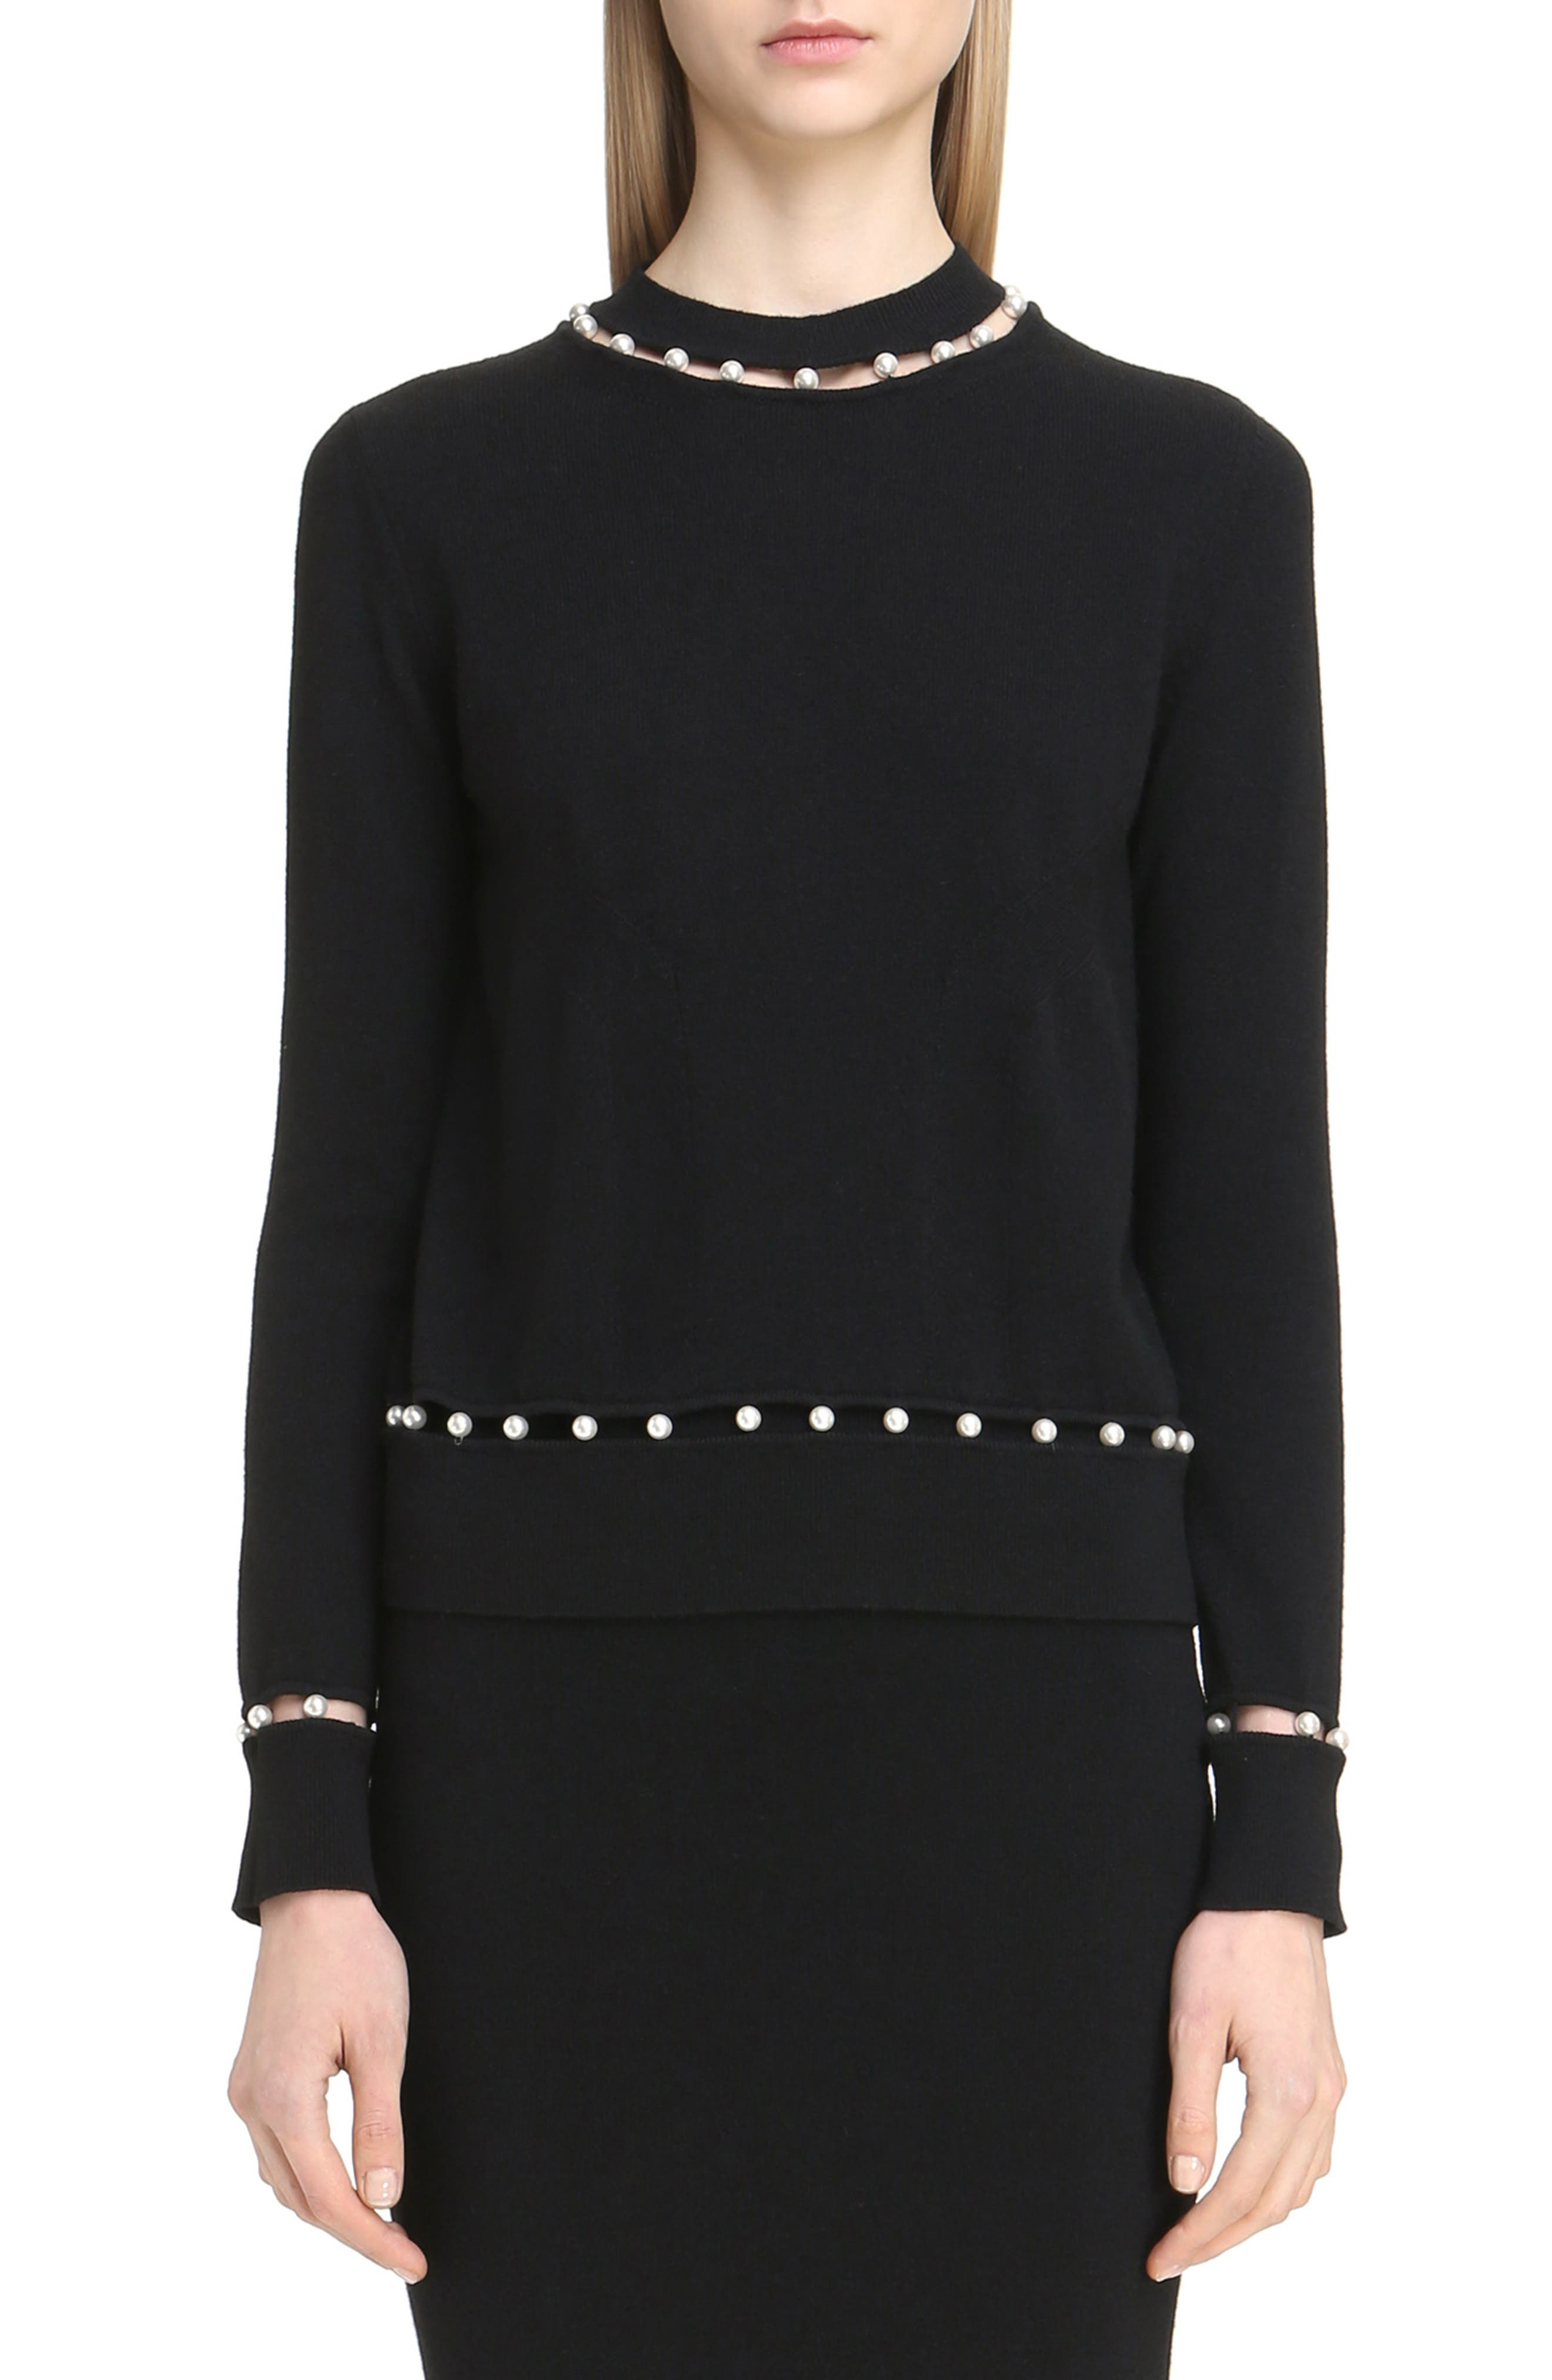 Alternate Image 1 Selected - Givenchy Imitation Pearl Inset Wool Blend Sweater